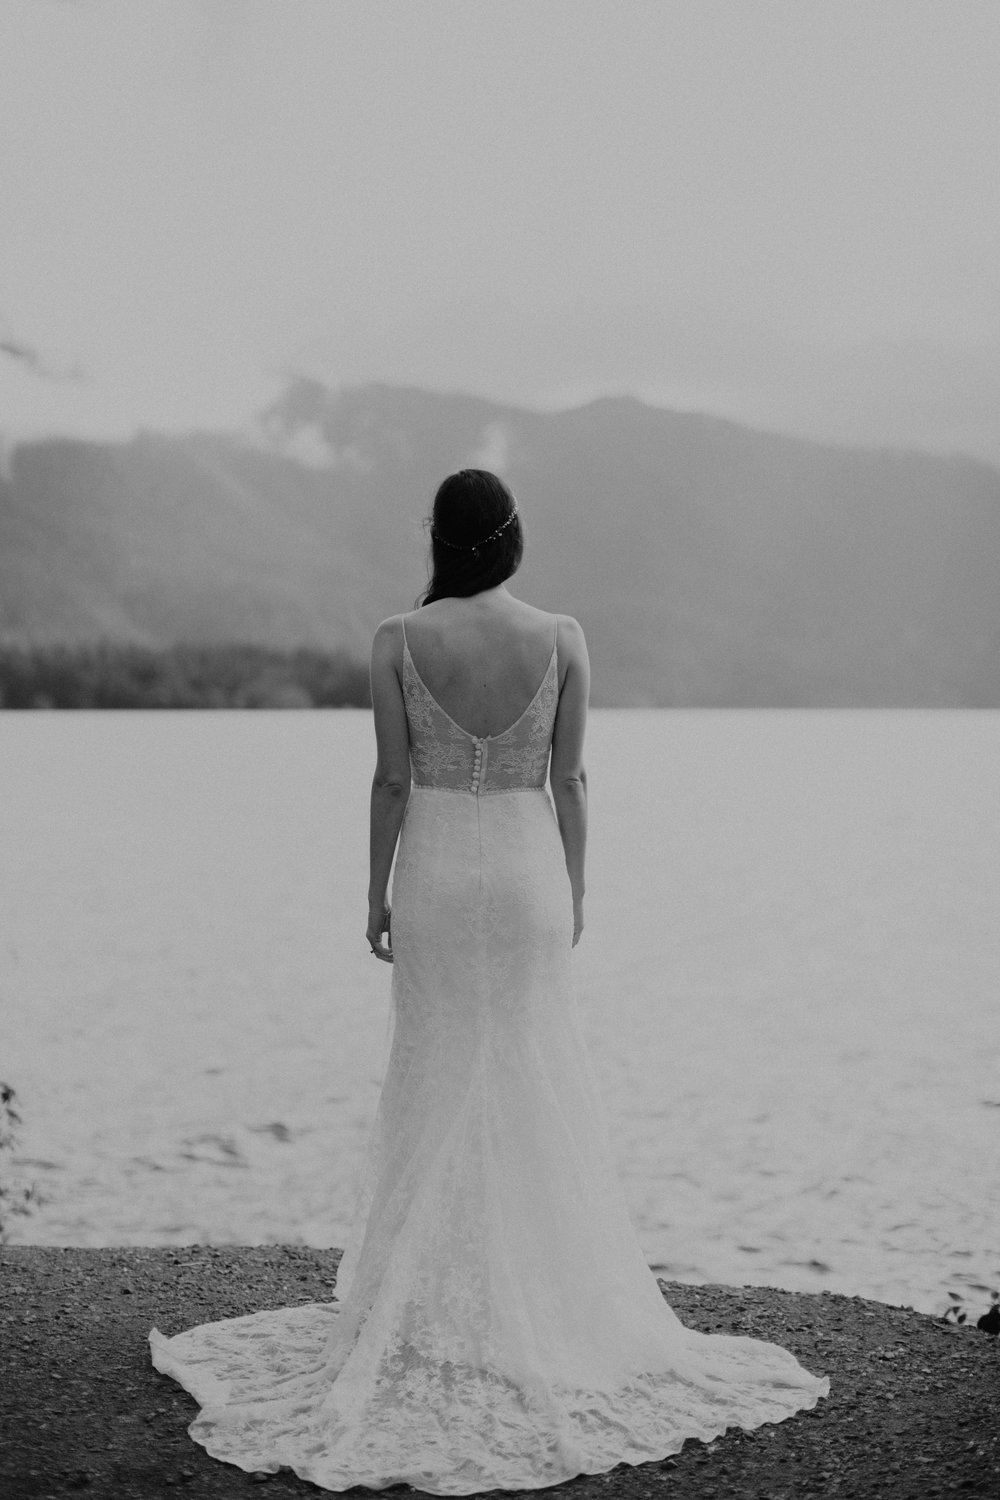 PNW-elopement-wedding-engagement-olympic national park-port angeles-hurricane ridge-lake crescent-kayla dawn photography- photographer-photography-kayladawnphoto-231.jpg